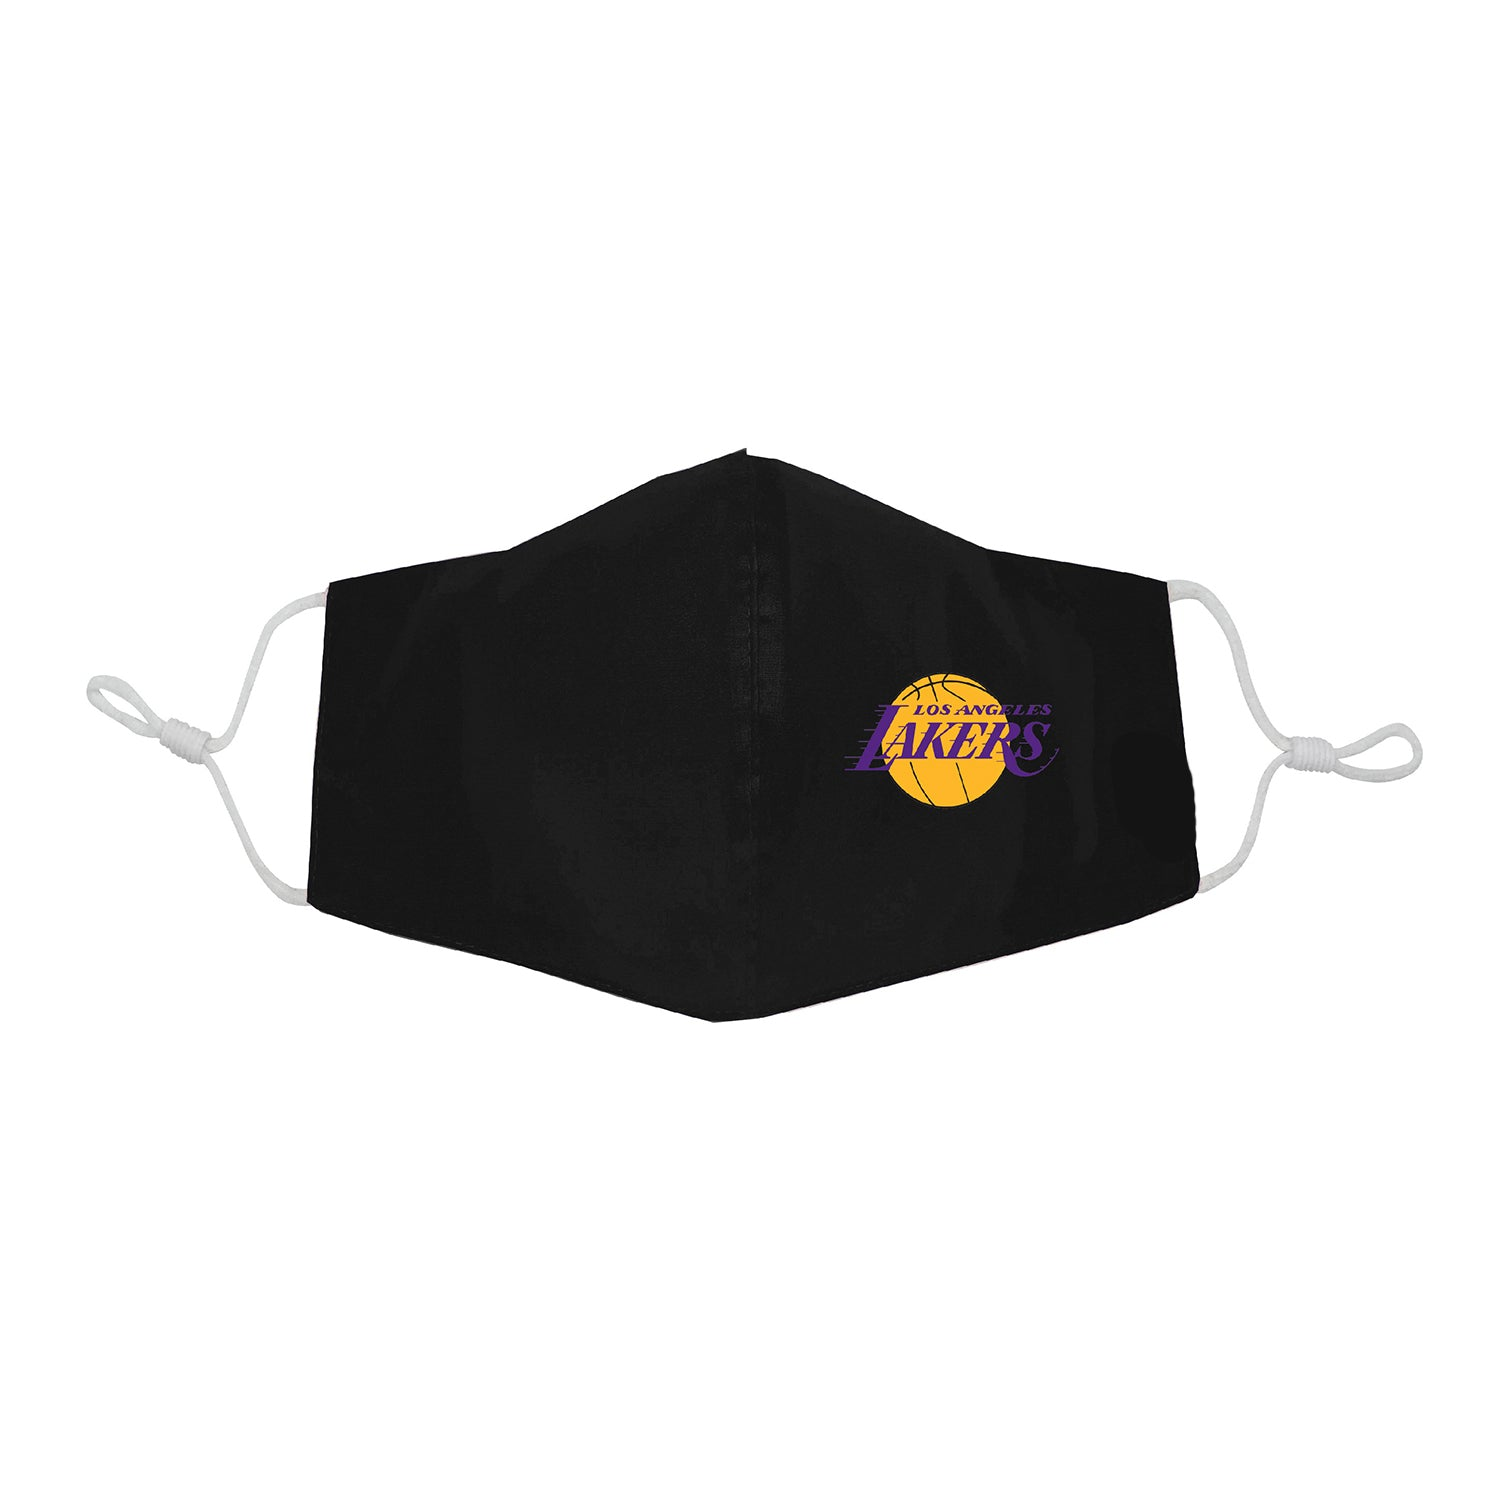 Los Angeles Lakers Face Mask with Filter